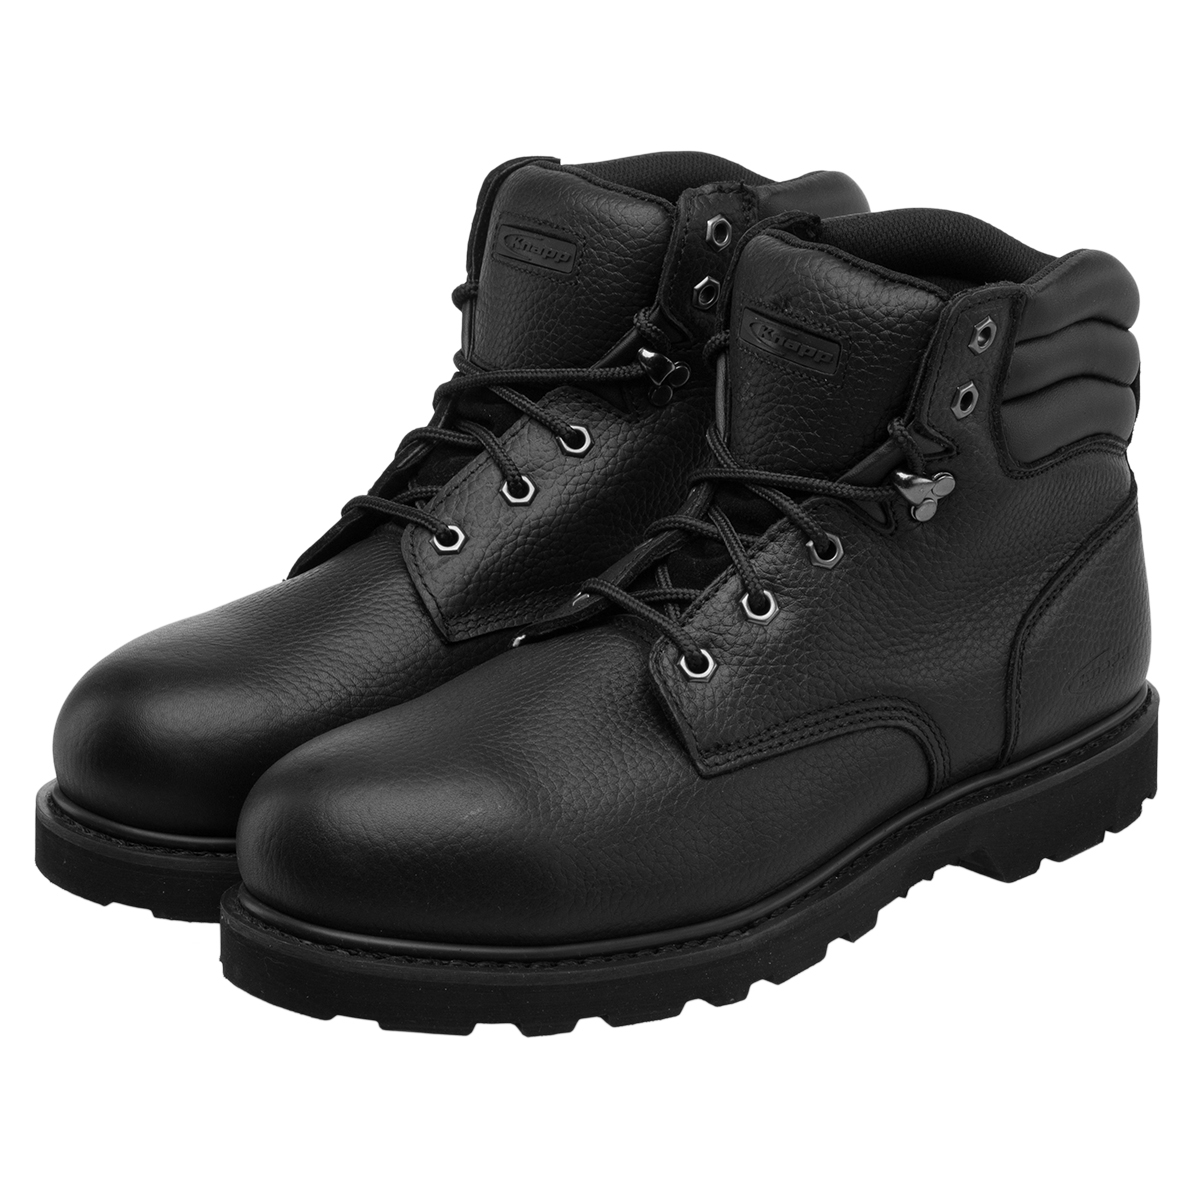 knapp men Knapp men's 8'' side zipper leather, nylon tactical boots by knapp $3149 - $9679 $ 31 49-$ 96 79 free shipping on eligible orders 1 out of 5 stars 1 product description built for your job, knapp boots are trusted by people who work for a  dr scholl's men's sprint health care and food service shoe.